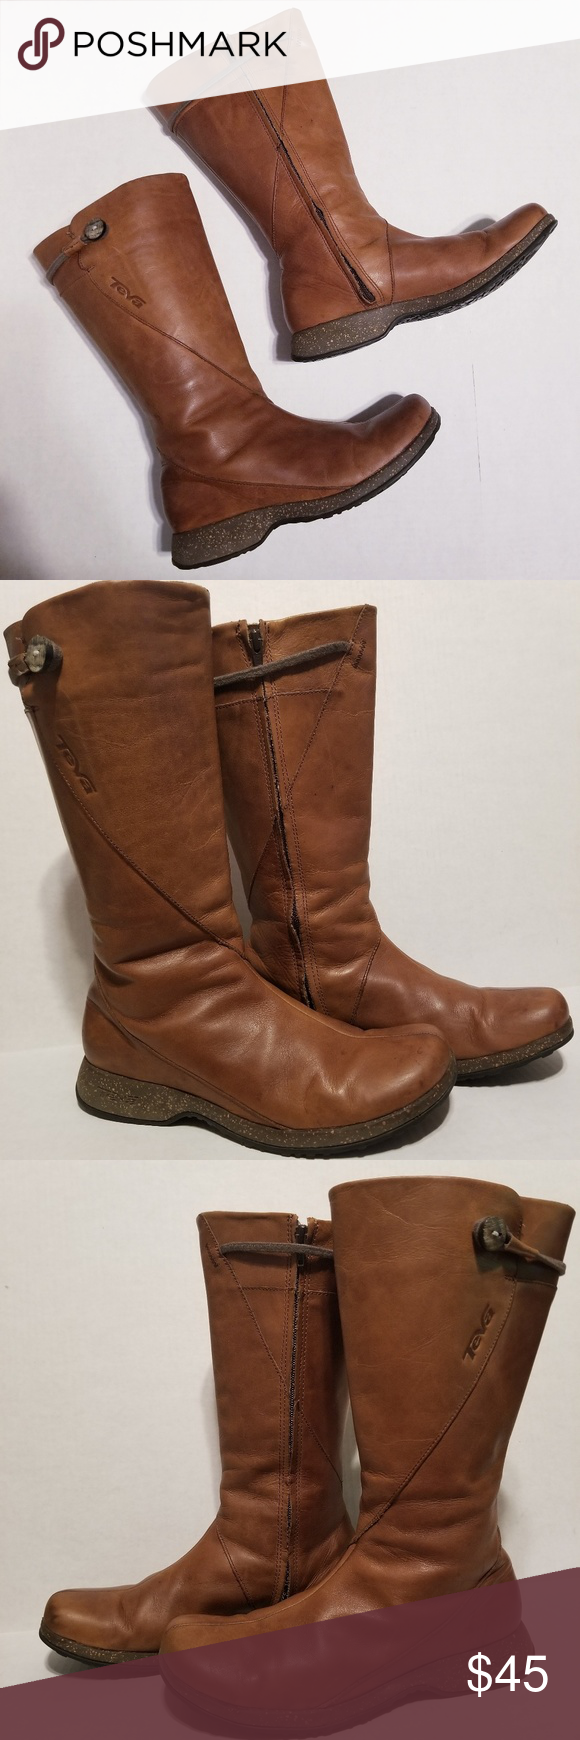 101a8124d991ae Teva Montecito Waterproof Leather Boots size 9 Beautiful pre-owned boots  with some signs of